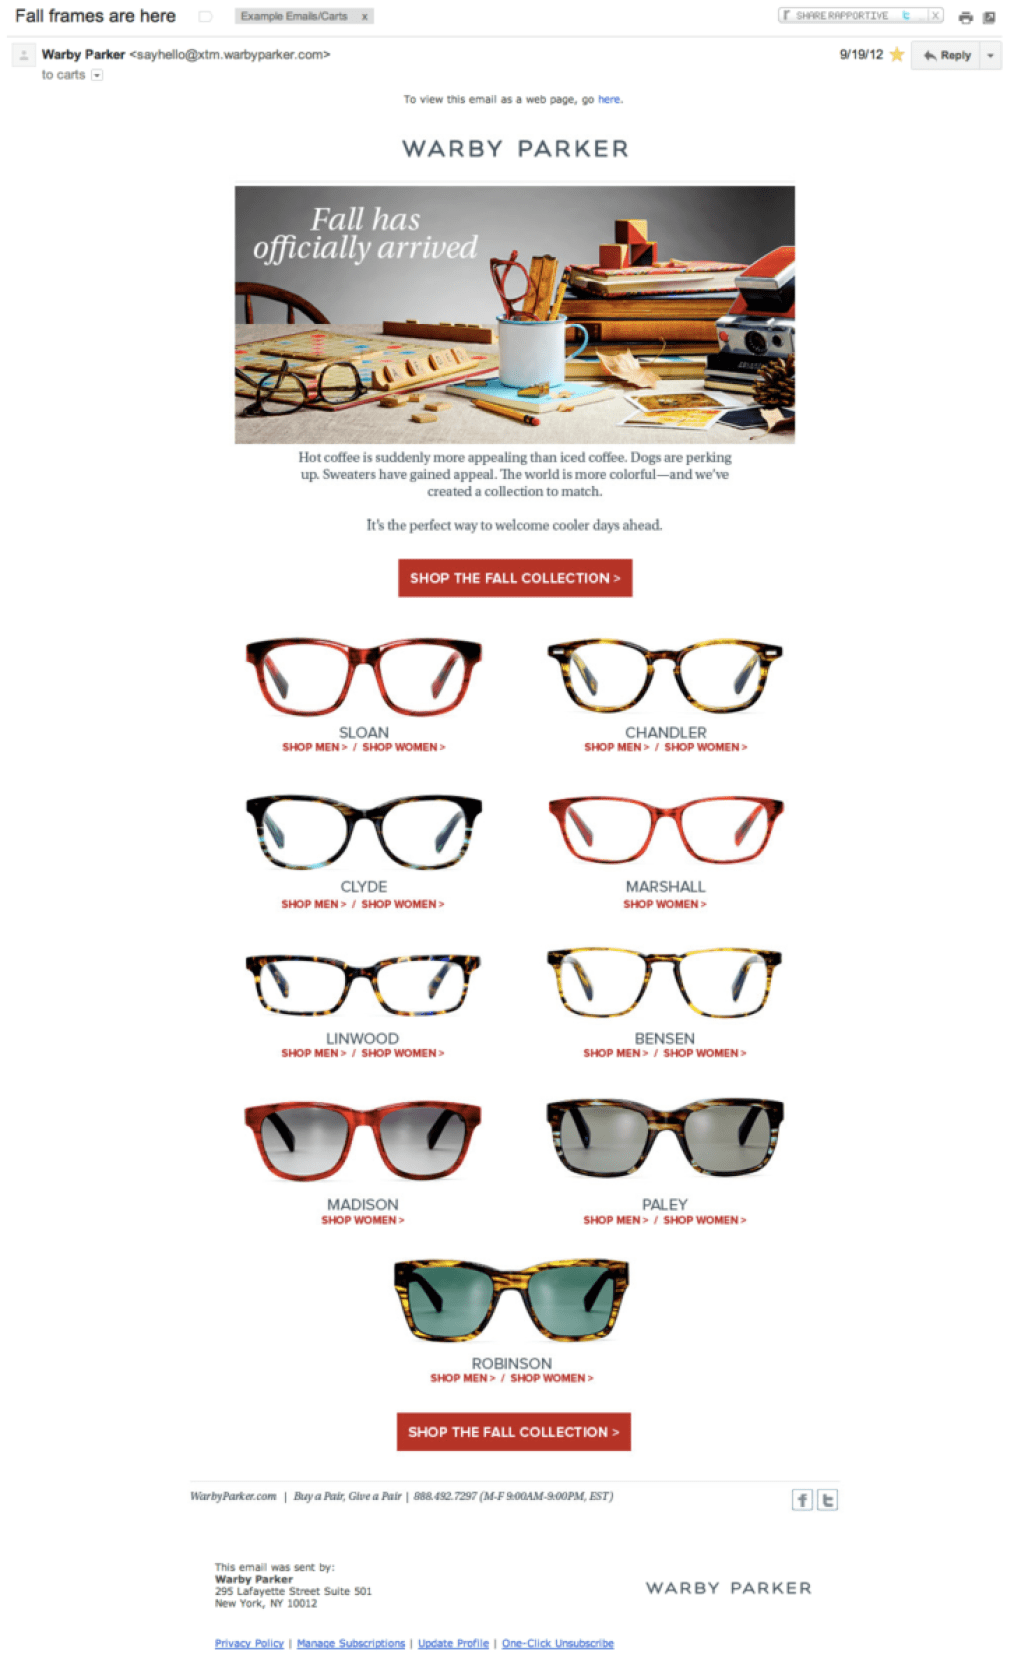 Warby Parker Email Marketing